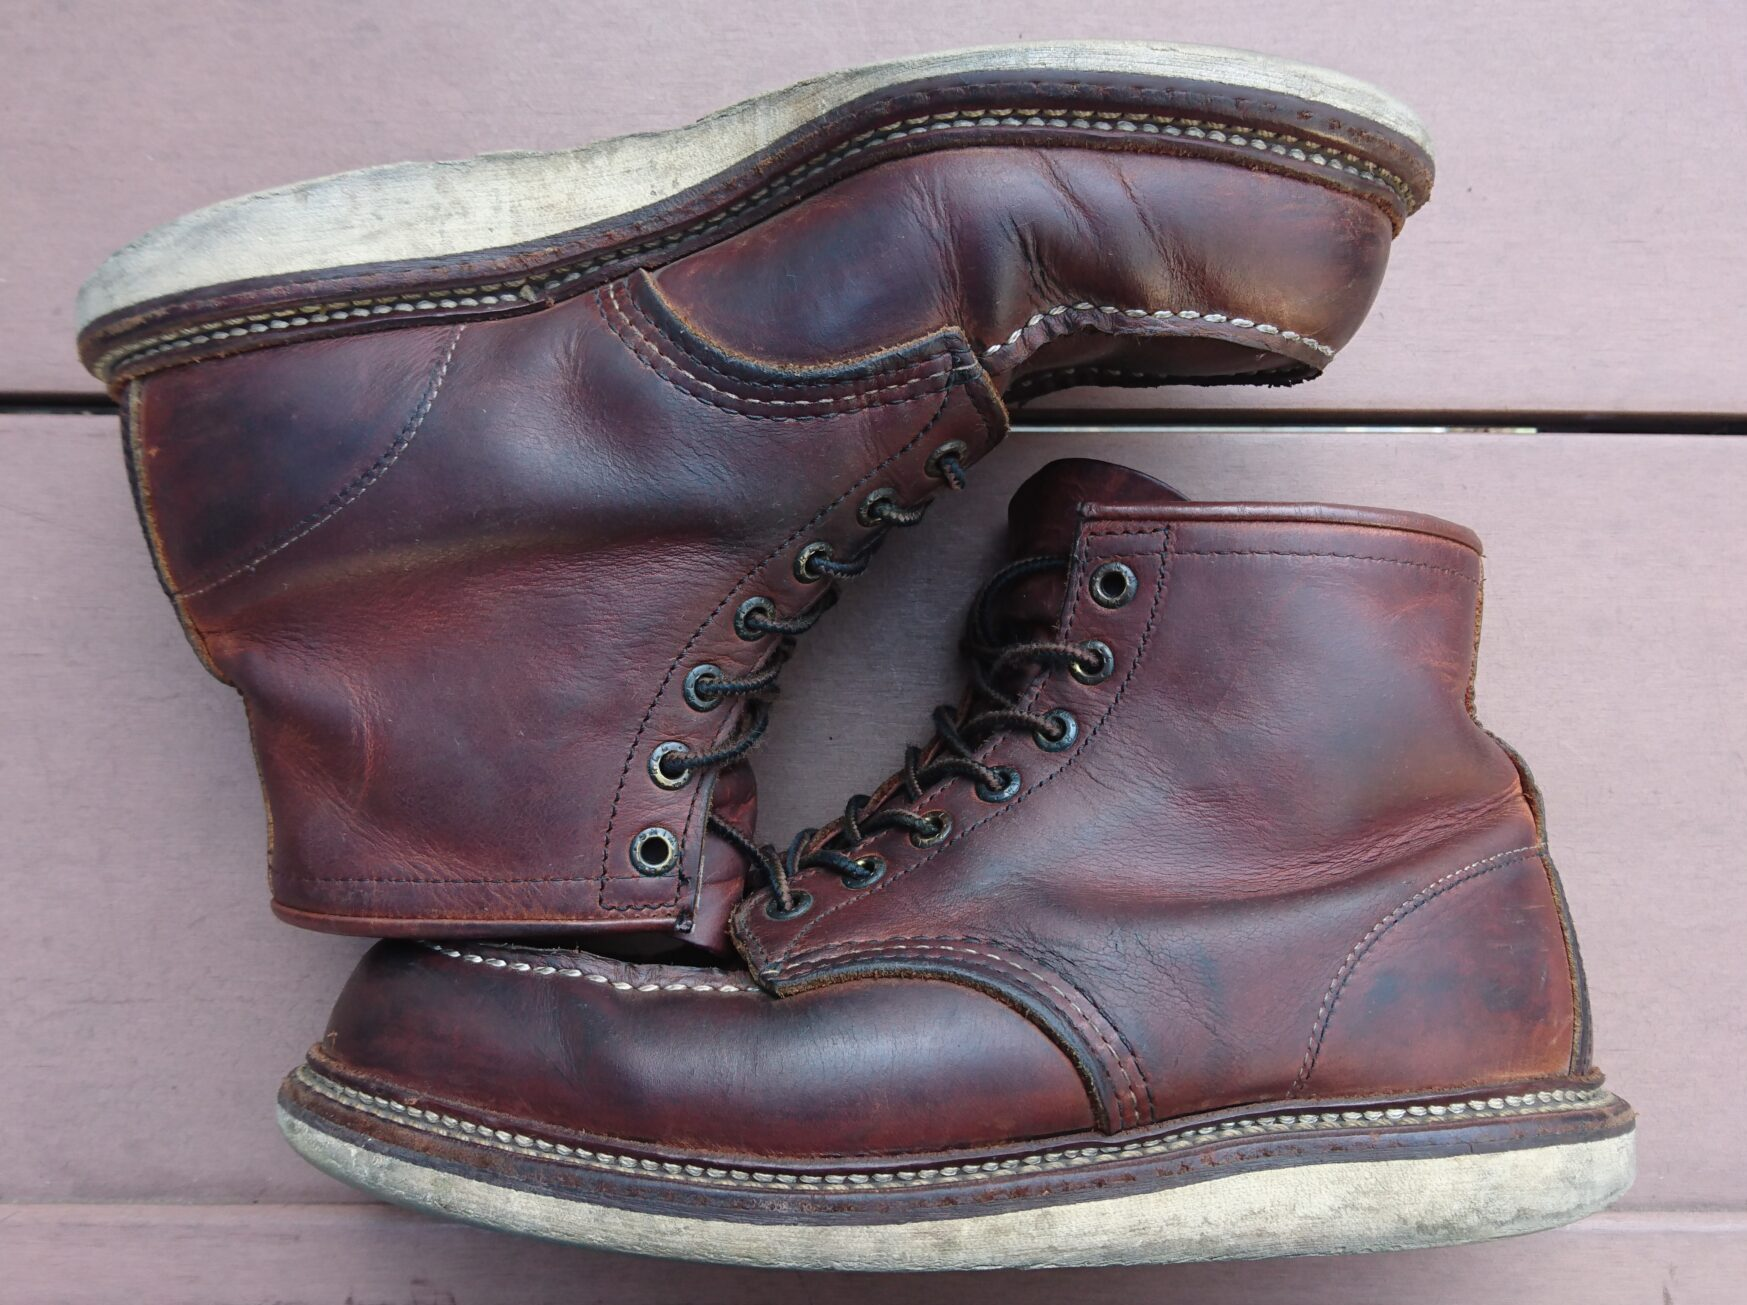 redwing1907 カッパーラフ&タフ 経年変化 エイジング 革 ワークブーツ